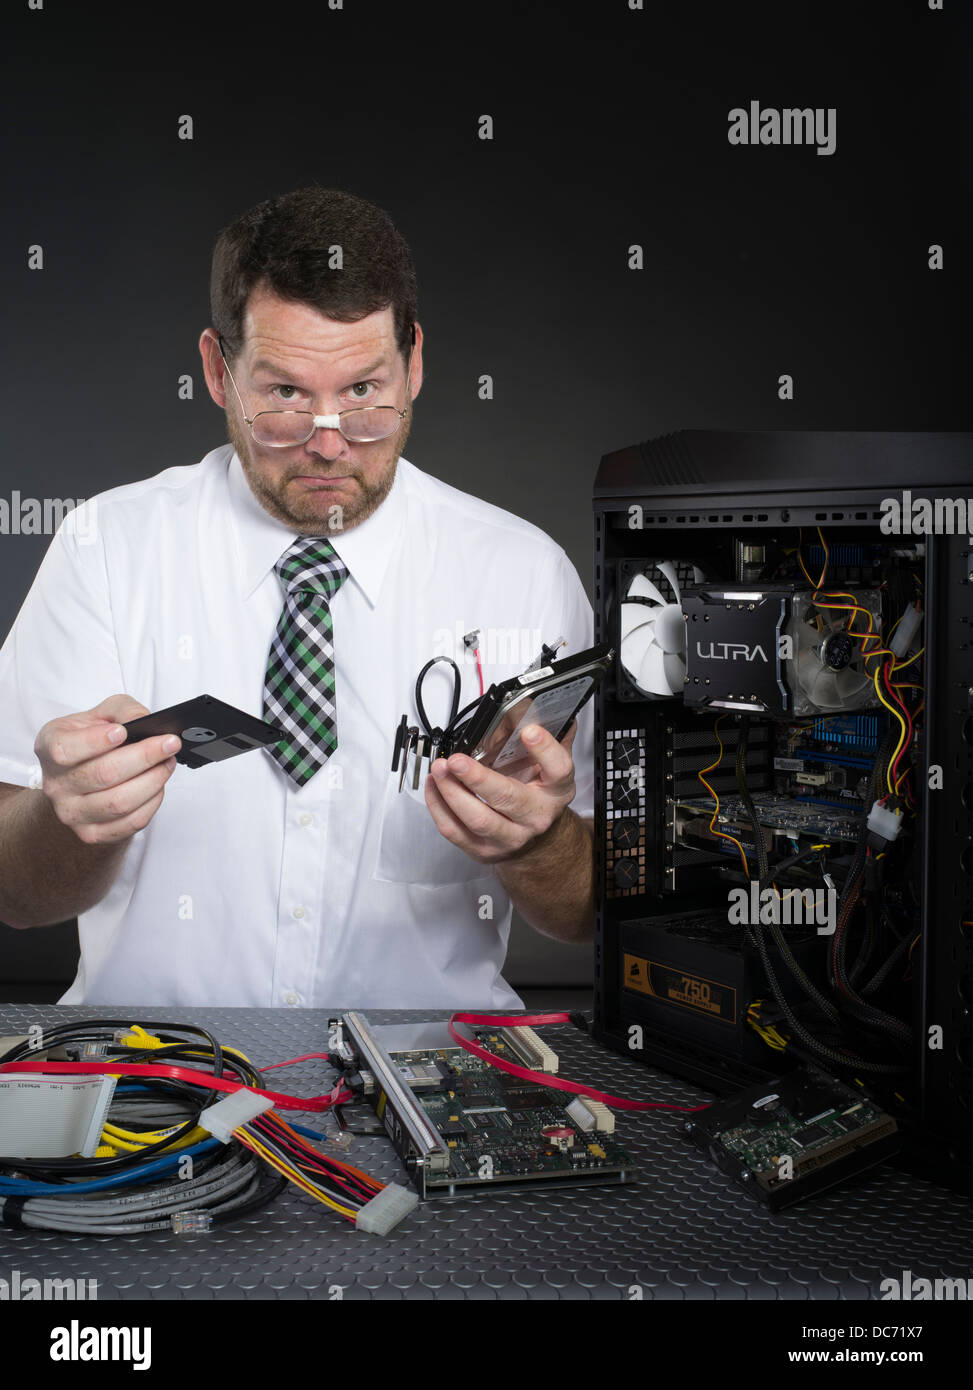 Man with computer and various hardware components - Stock Image